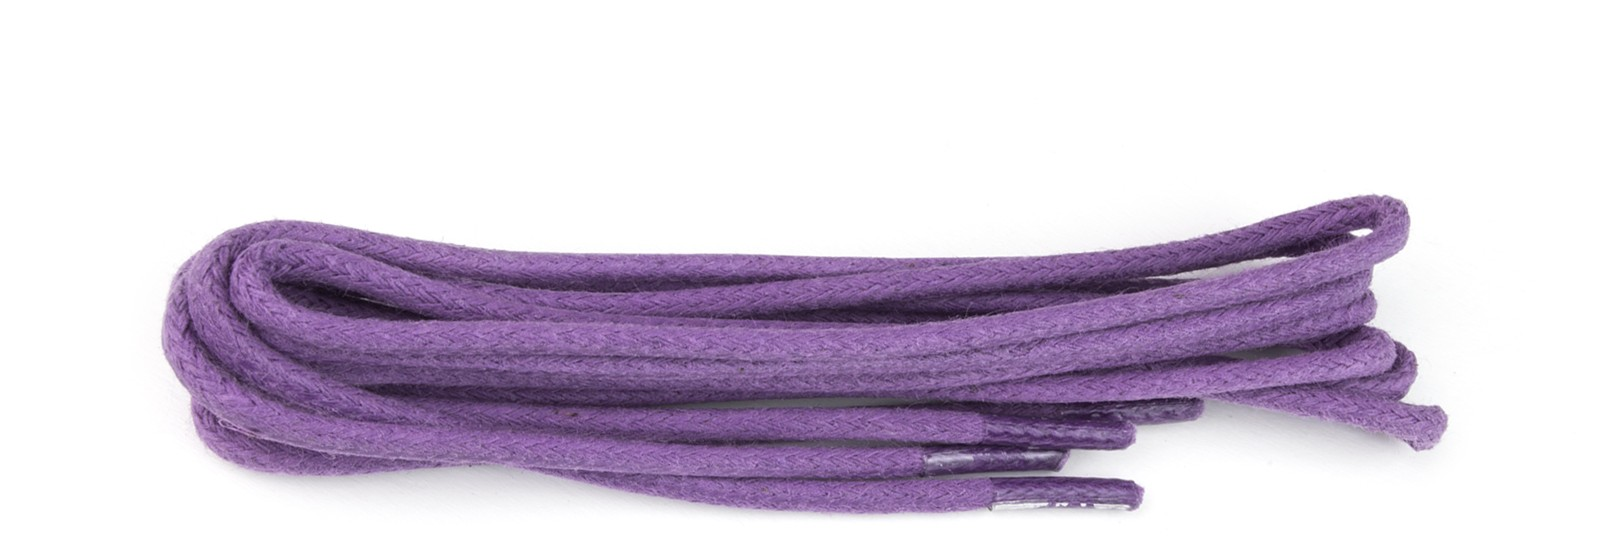 Lilac Wax Polished Fine 2mm Round Laces Laces